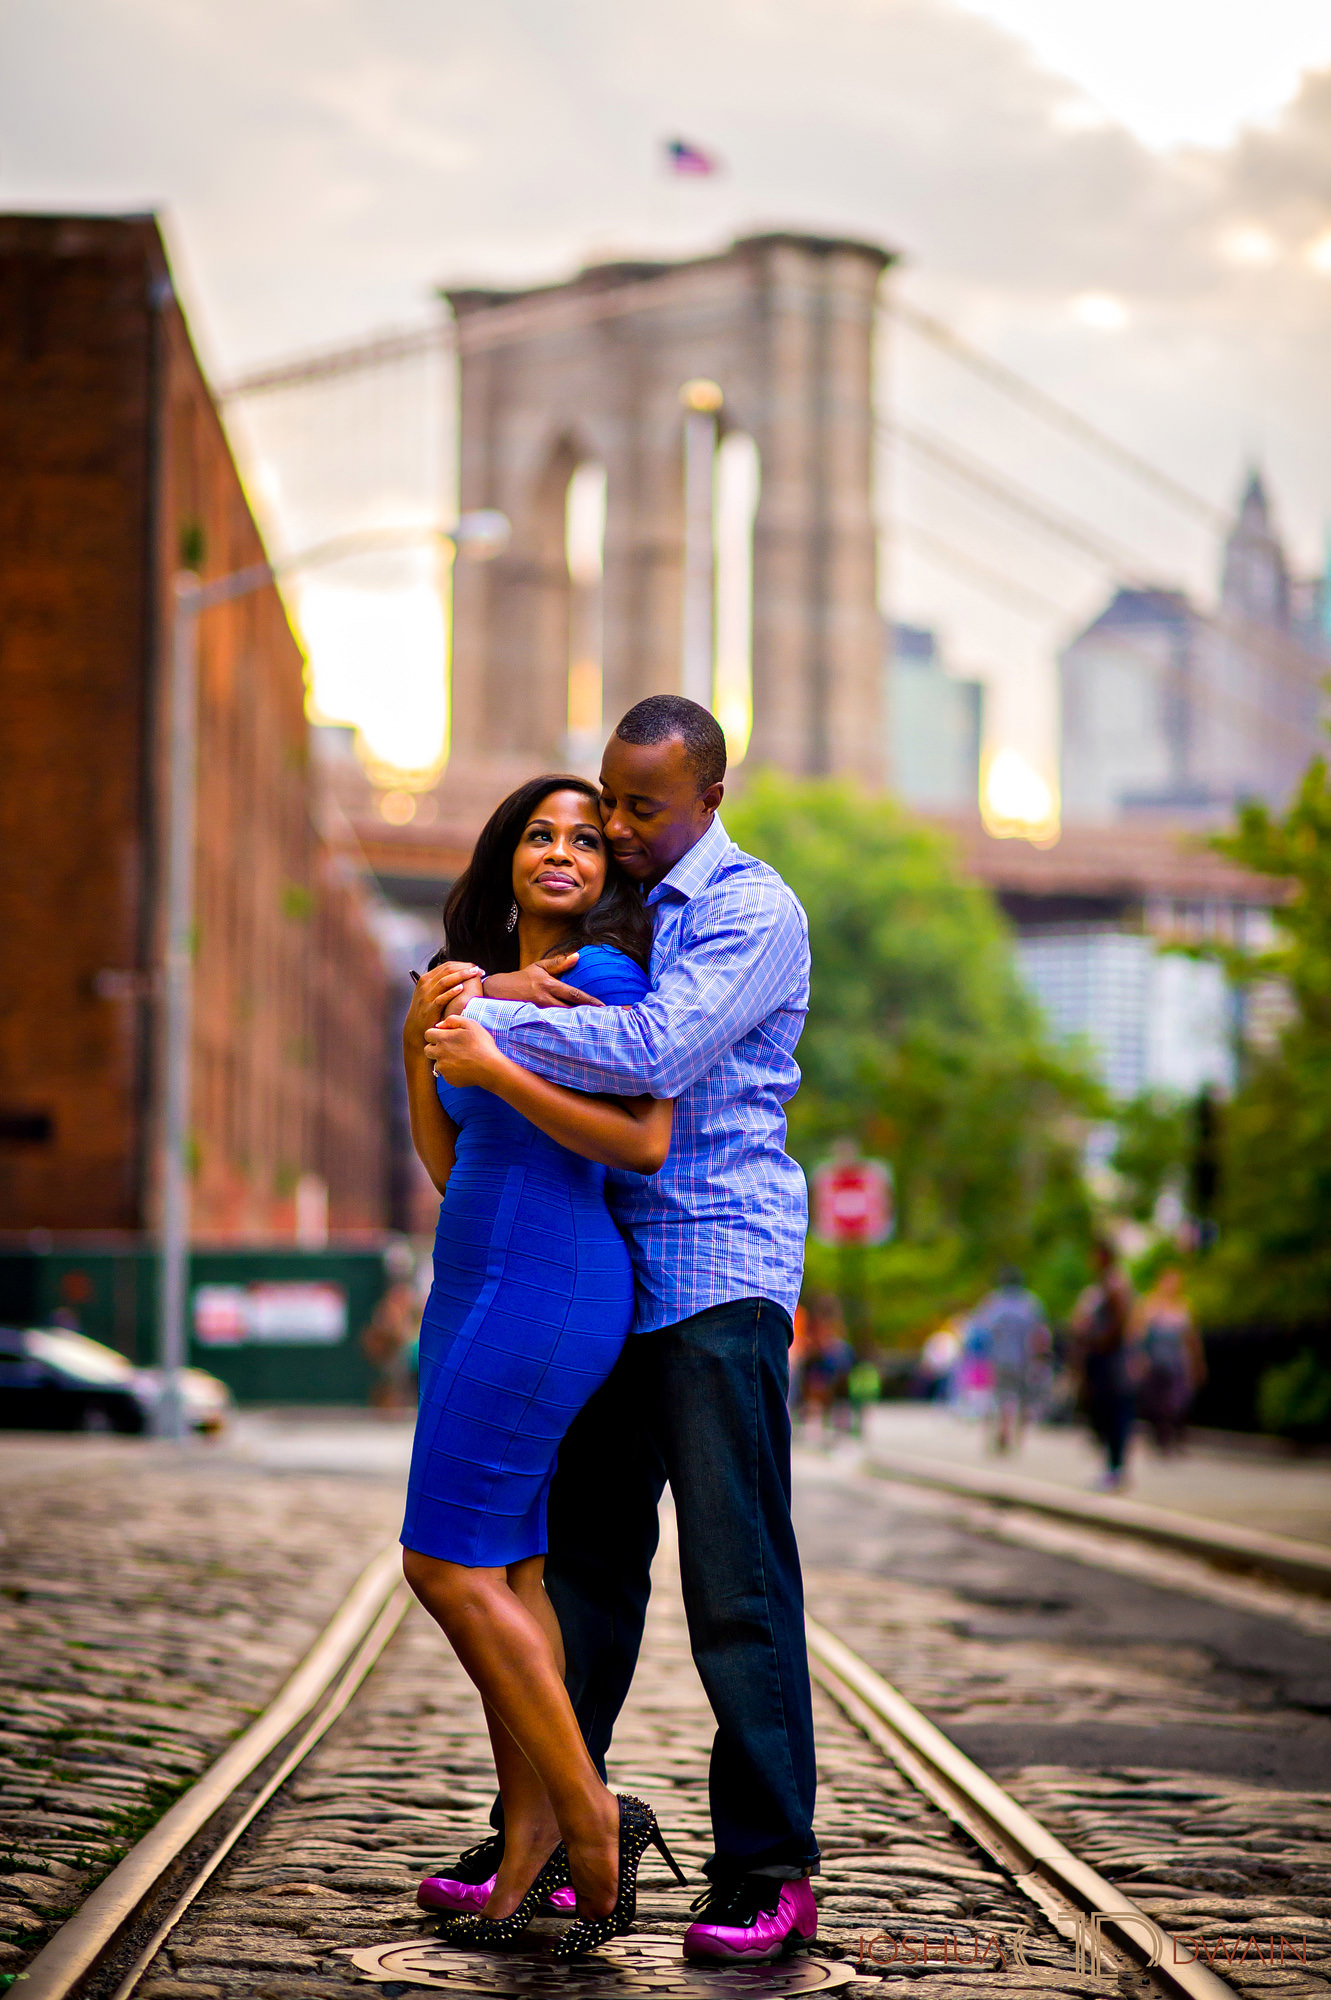 Penelope & Joseph's Engagement Session in Dumbo, Brooklyn, NYC